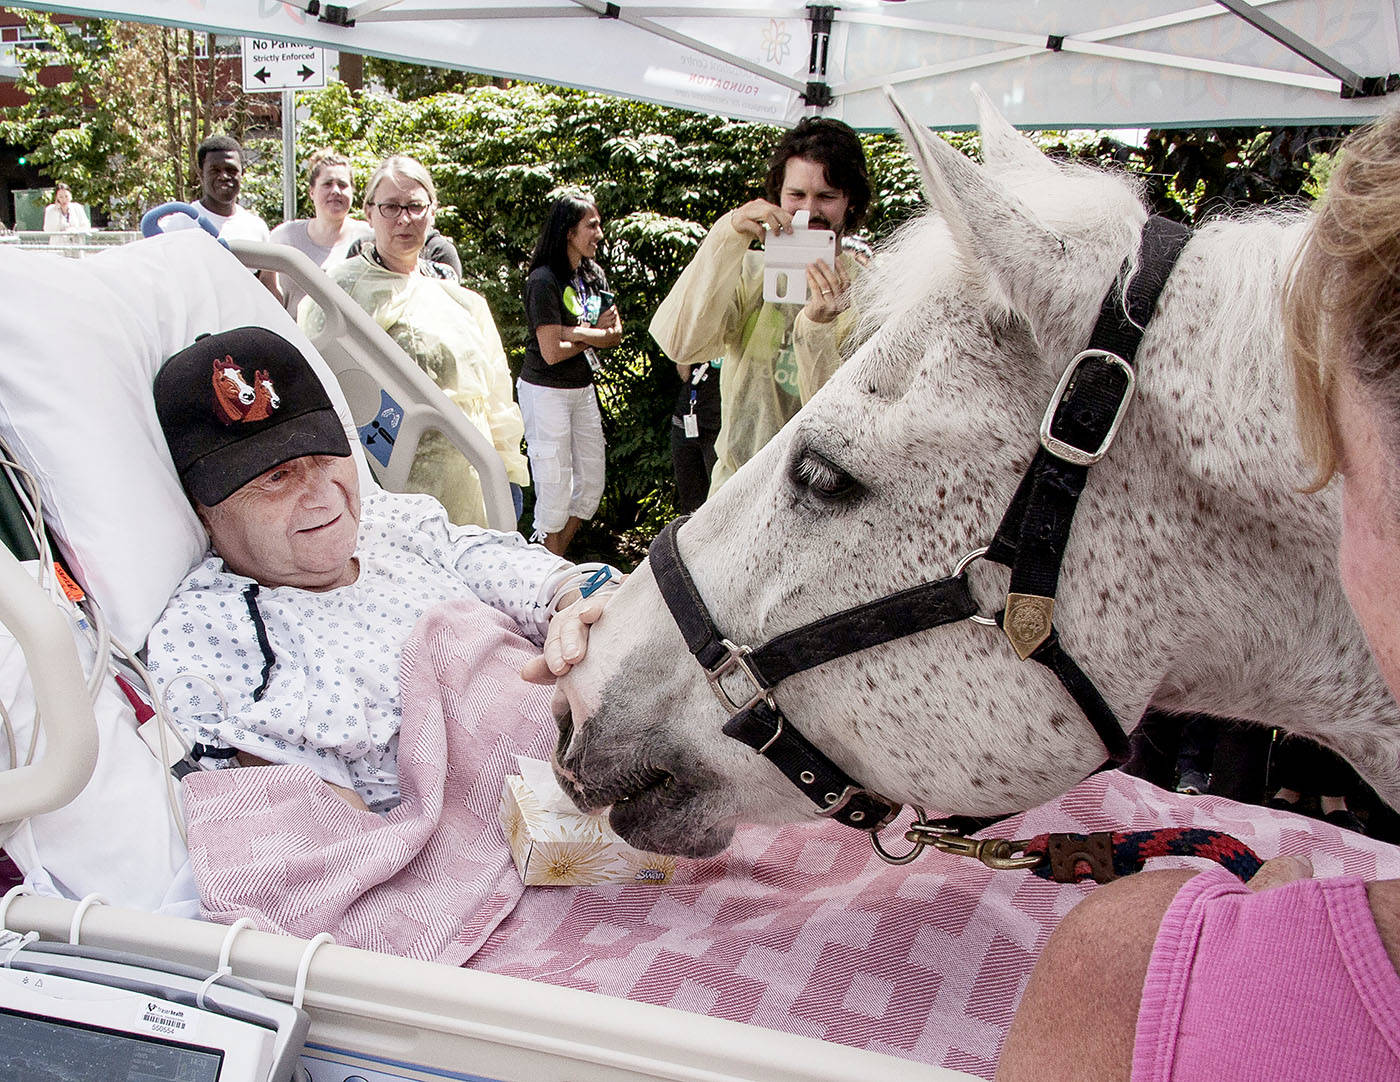 Jim Clarkson has been a patient at Surrey Memorial Hospital for the past five months. On Tuesday, he received a surprise visit from a pair of Pacific Riding for Developing Abilities' therapeutic horses, including 14-year-old Dodger. Jim had volunteered at PRDA for more than 20 years.                                Rick Gammer photo